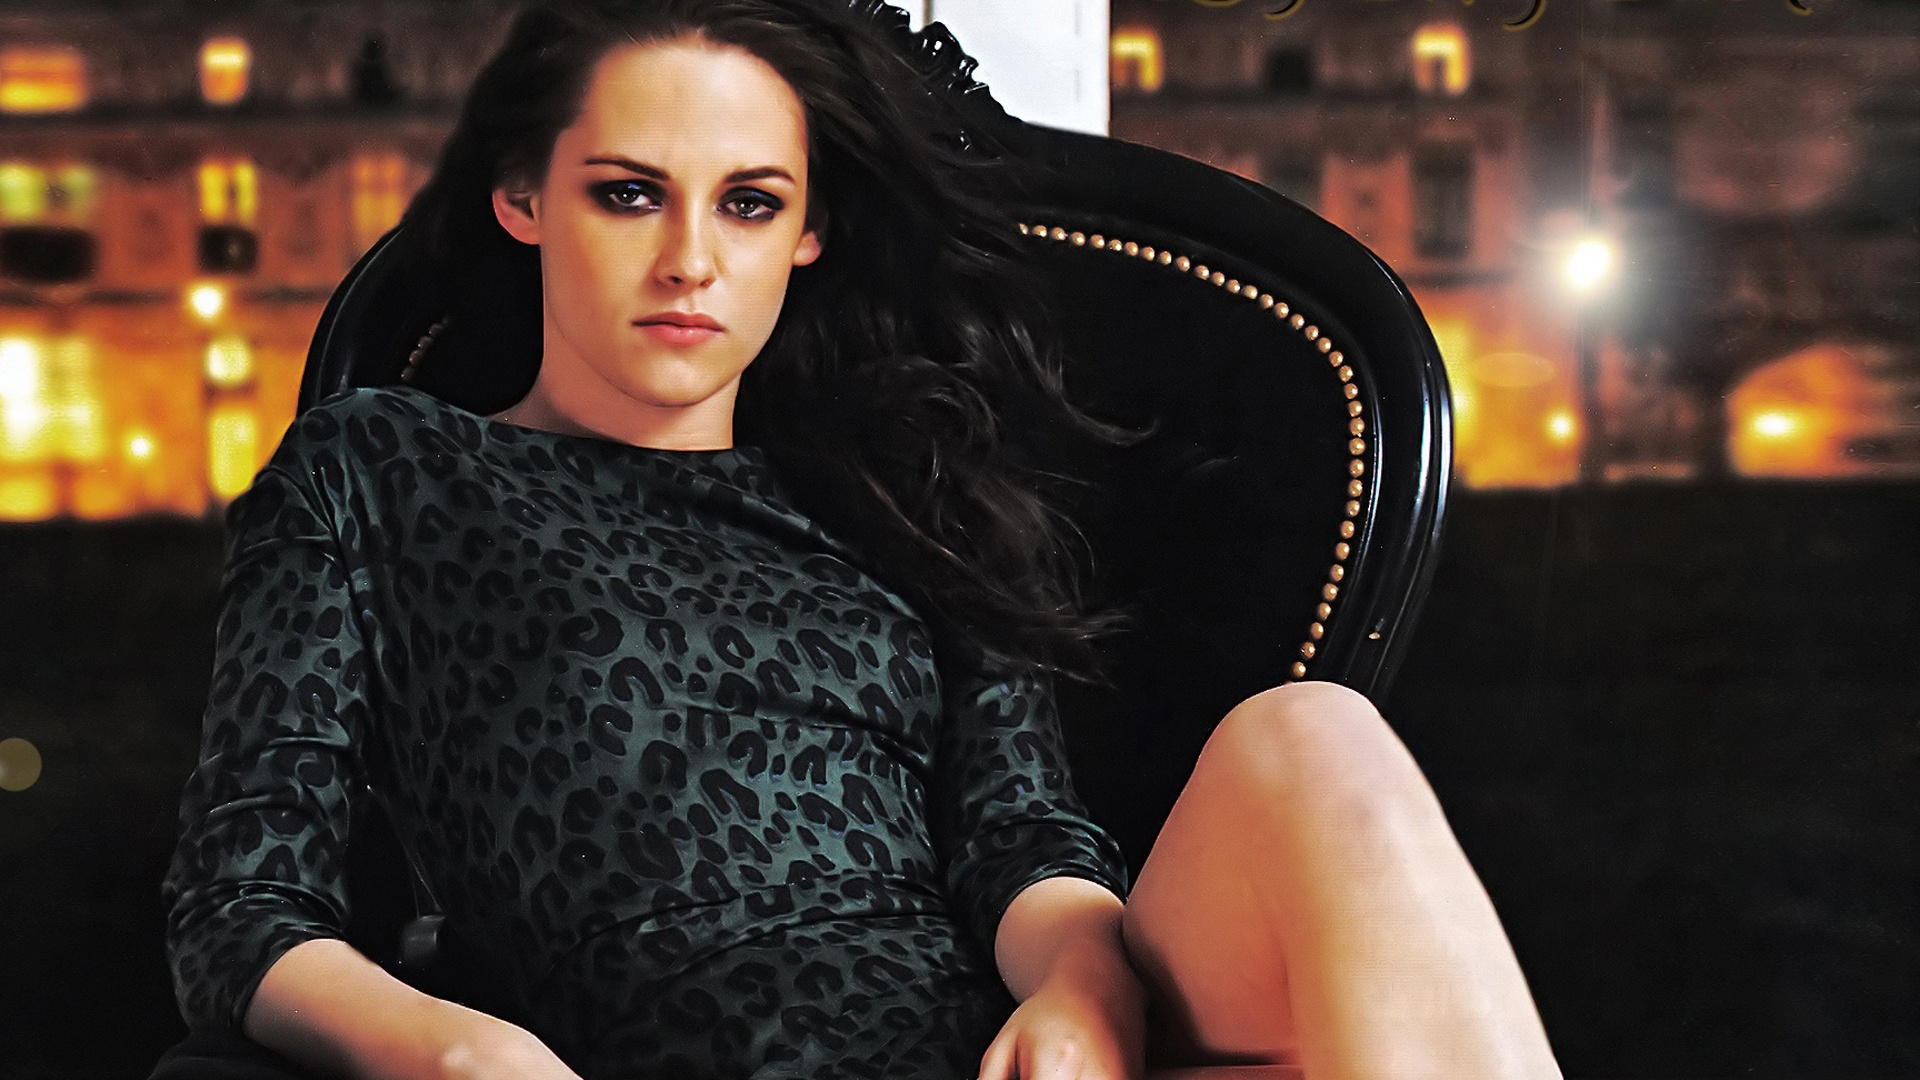 kristen stewart wallpapers hd A15